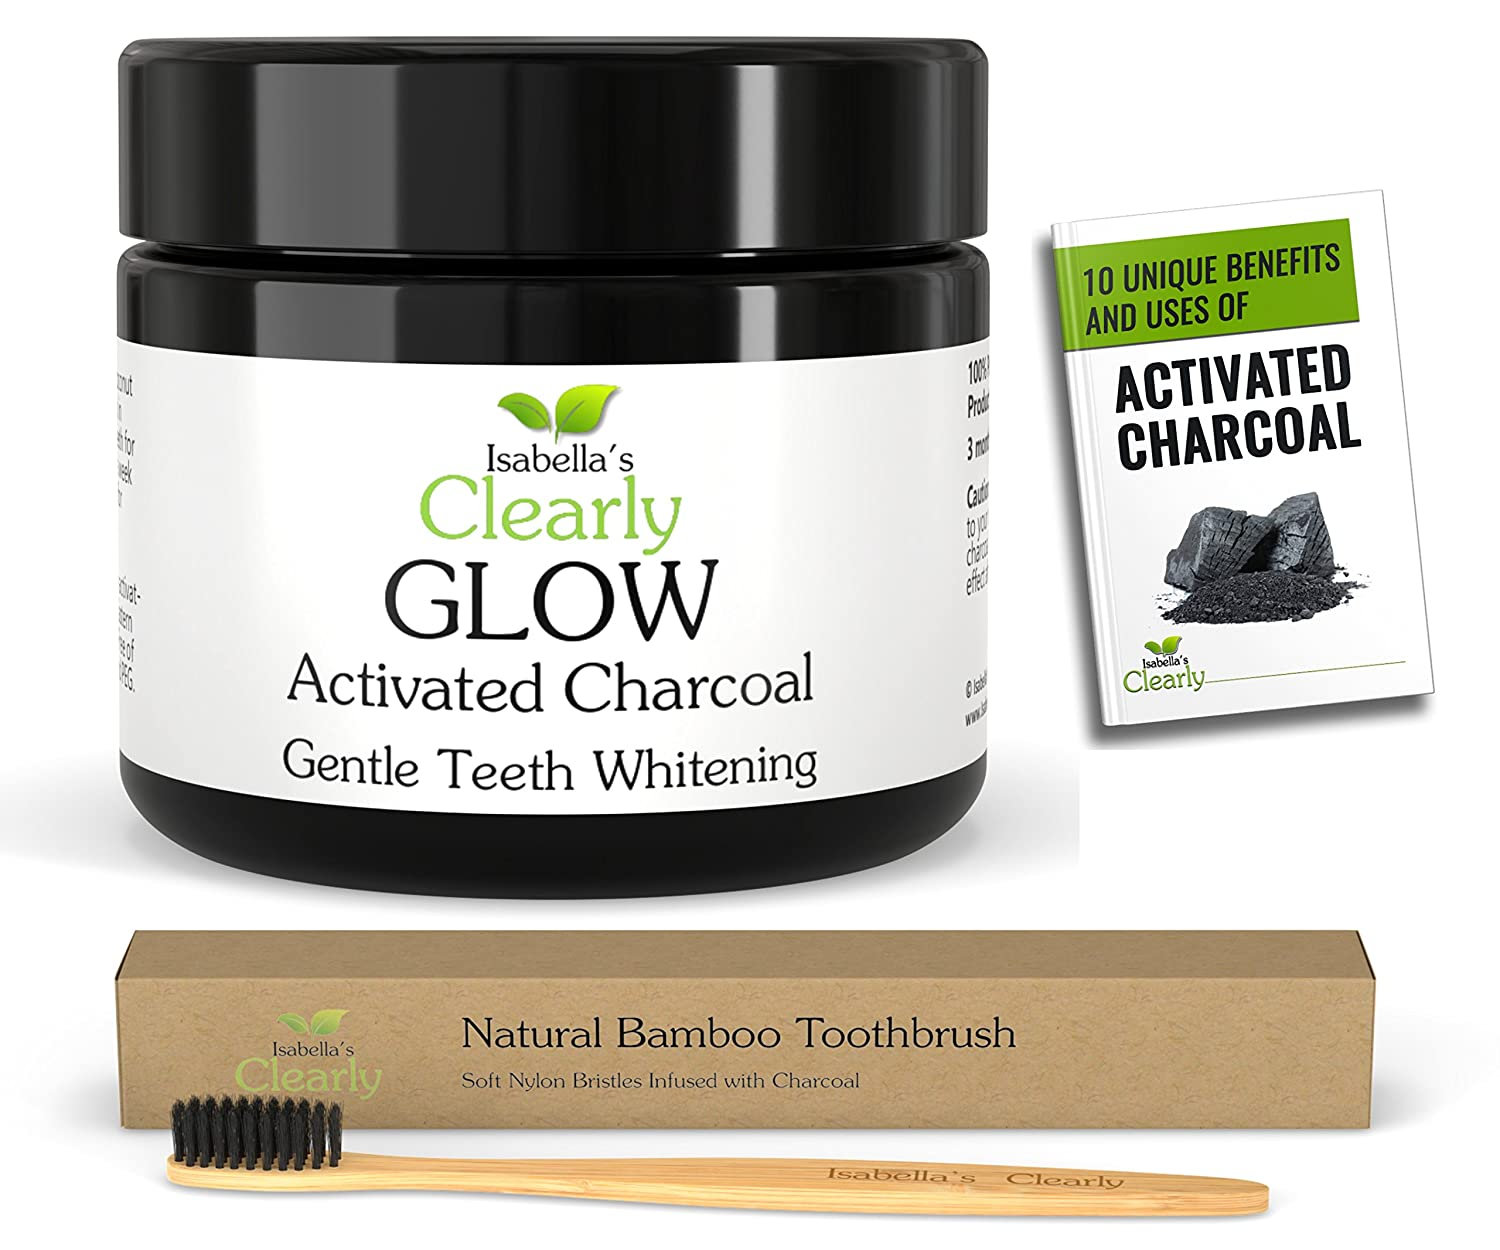 Isabella's Clearly GLOW (BULK) Teeth Whitening Activated Charcoal + Soft Bamboo Toothbrush. #1 Product in Canada. 100% Pure Food Grade Non-GMO, Better than Strips, Bleach, Toothpaste. RISK FREE. (80g) Isabella' s Clearly